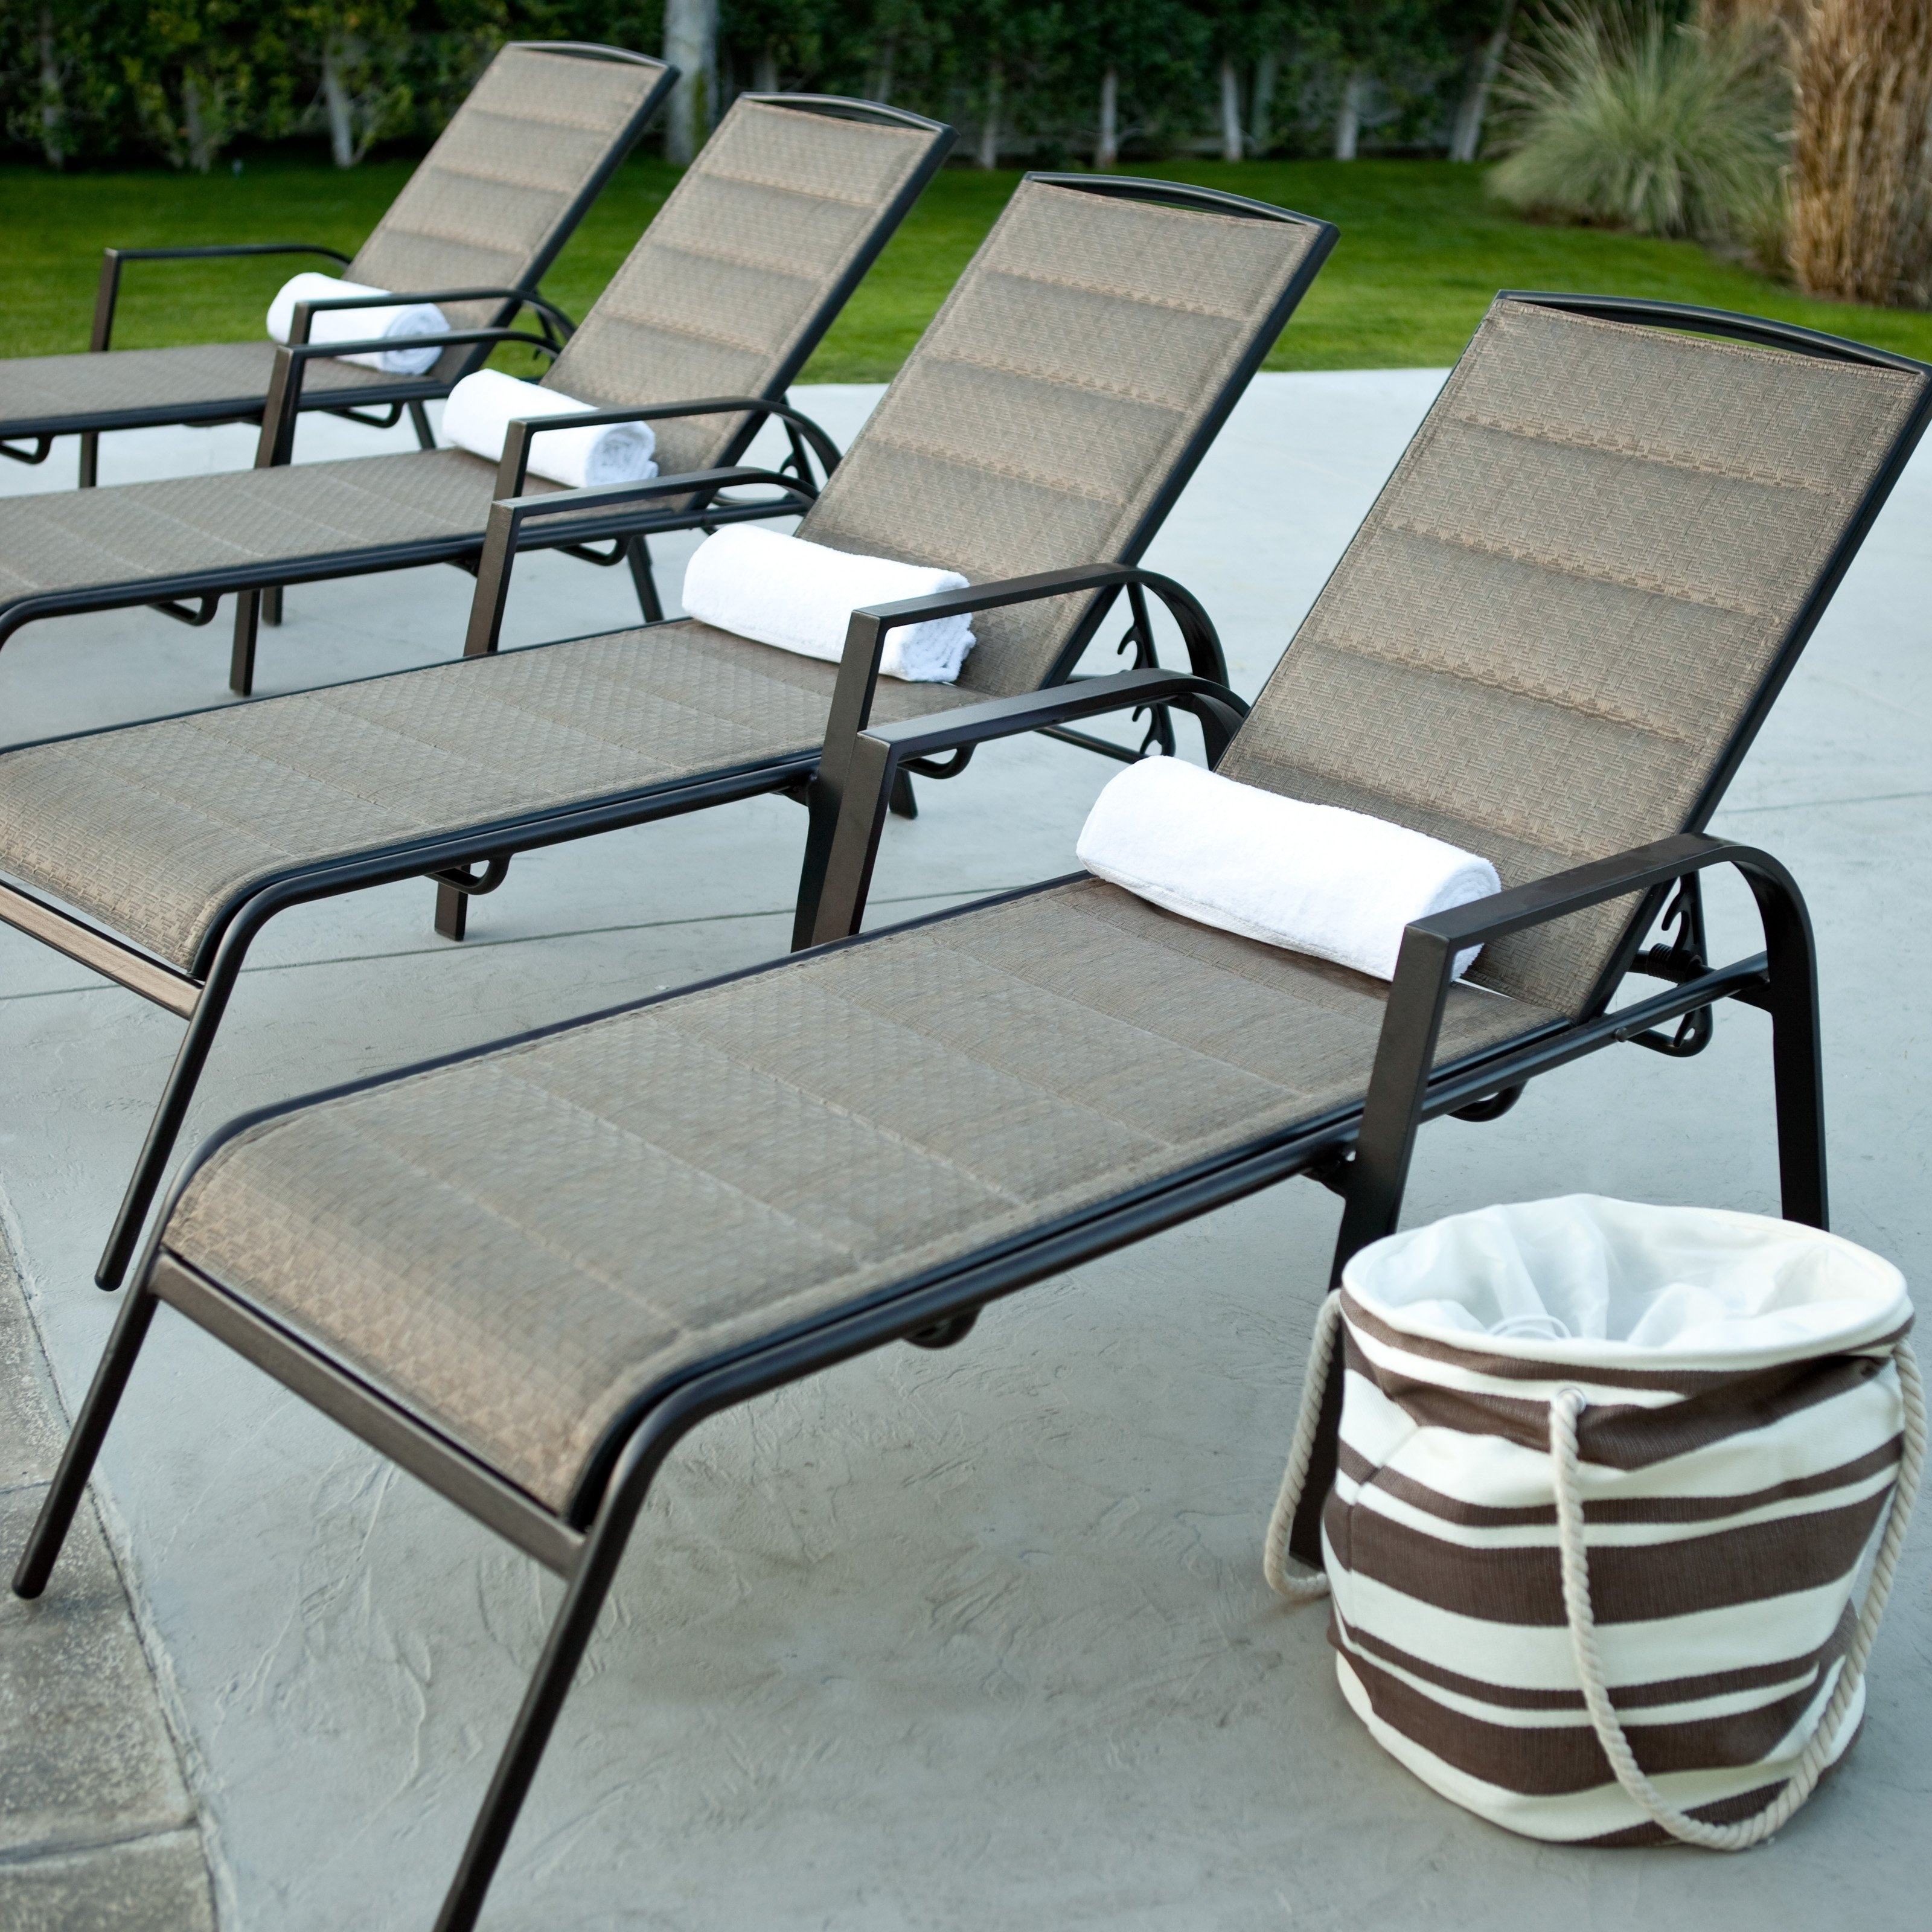 Most Recent Luxury Outdoor Chaise Lounge Chairs Regarding Luxury Outdoor Chaise Lounge Chairs • Lounge Chairs Ideas (View 10 of 15)